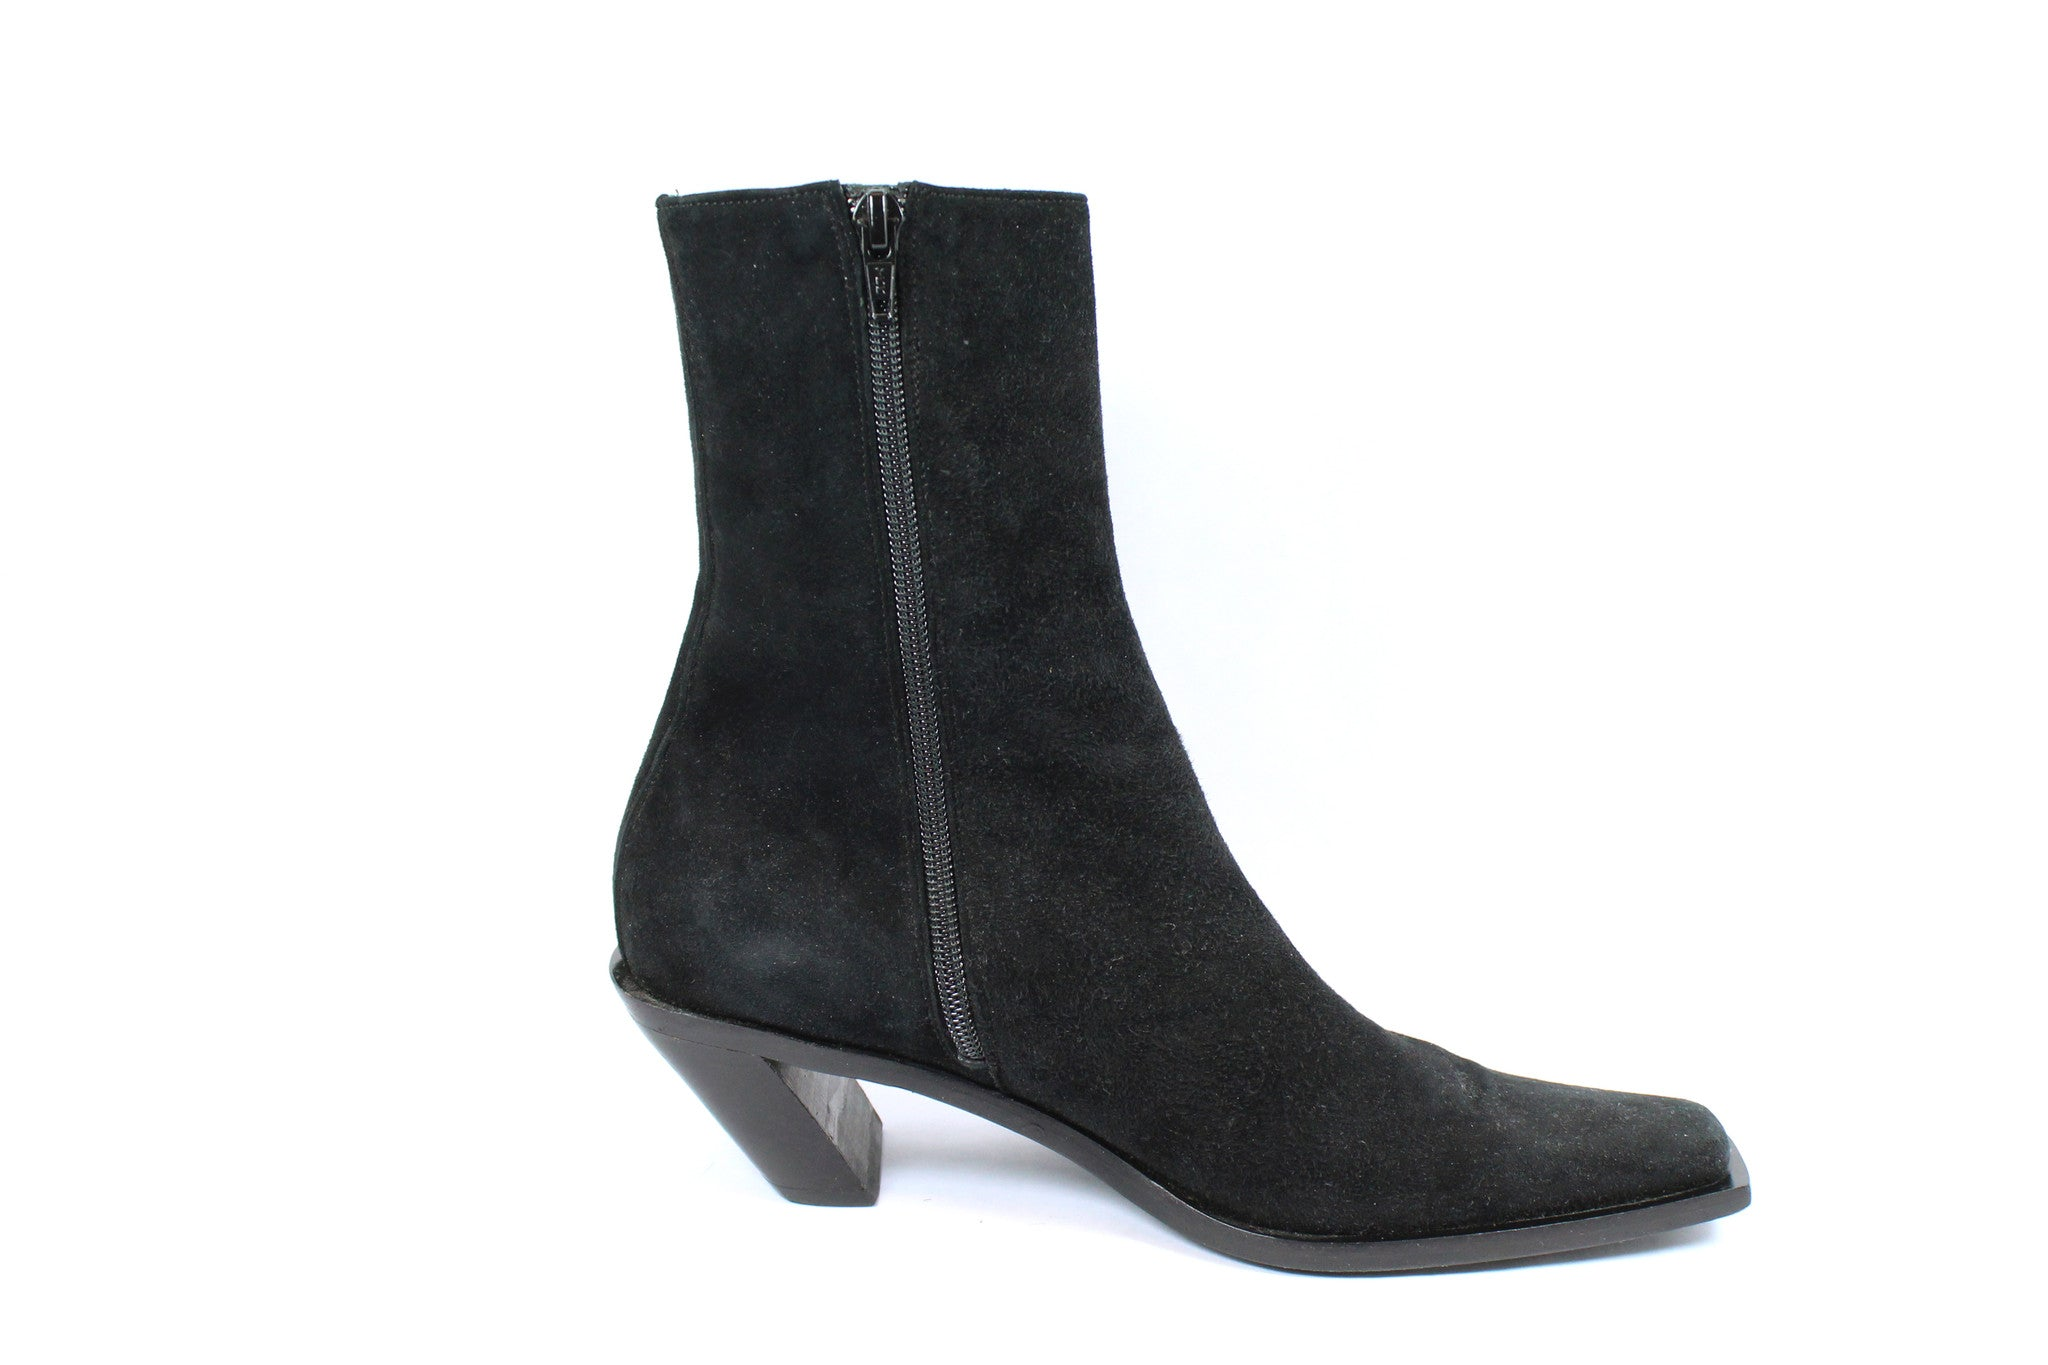 'SOLD' Ann Demeulemeester Suede Ankle Boots w Slanted Heel (Size 37) - Encore Consignment - 5